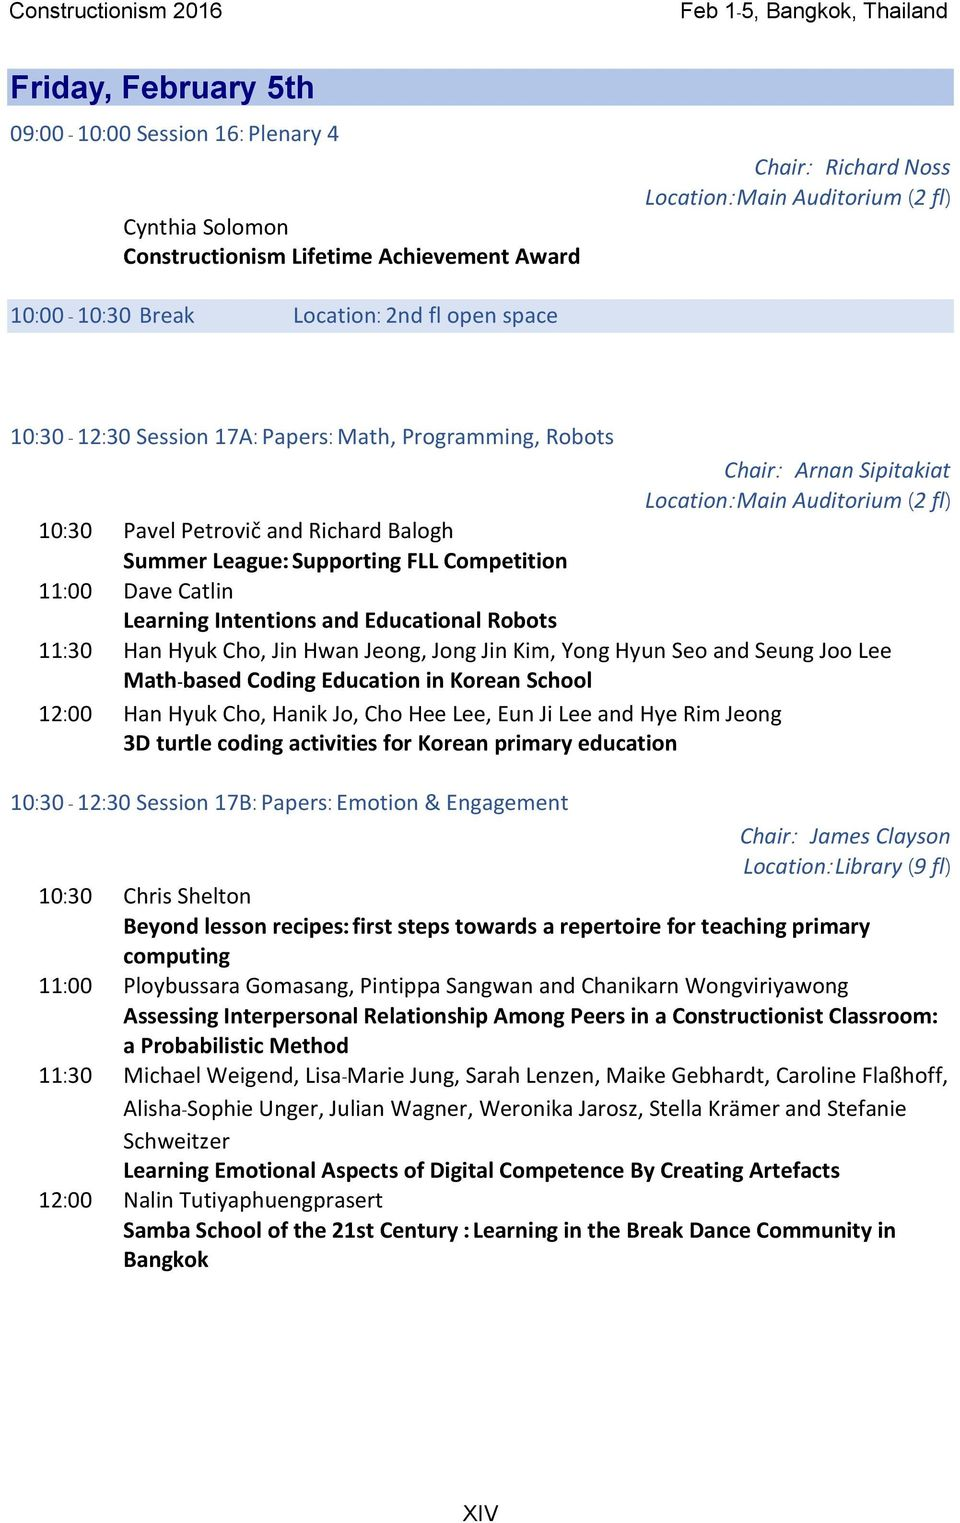 Constructionism Conference Proceedings Dra Papers Panels Four Kids39 Websites About Electricity For Practice And Fun Petrovi Richard Balogh Summer League Supporting Fll Competition 1100 Dave Catlin Learning